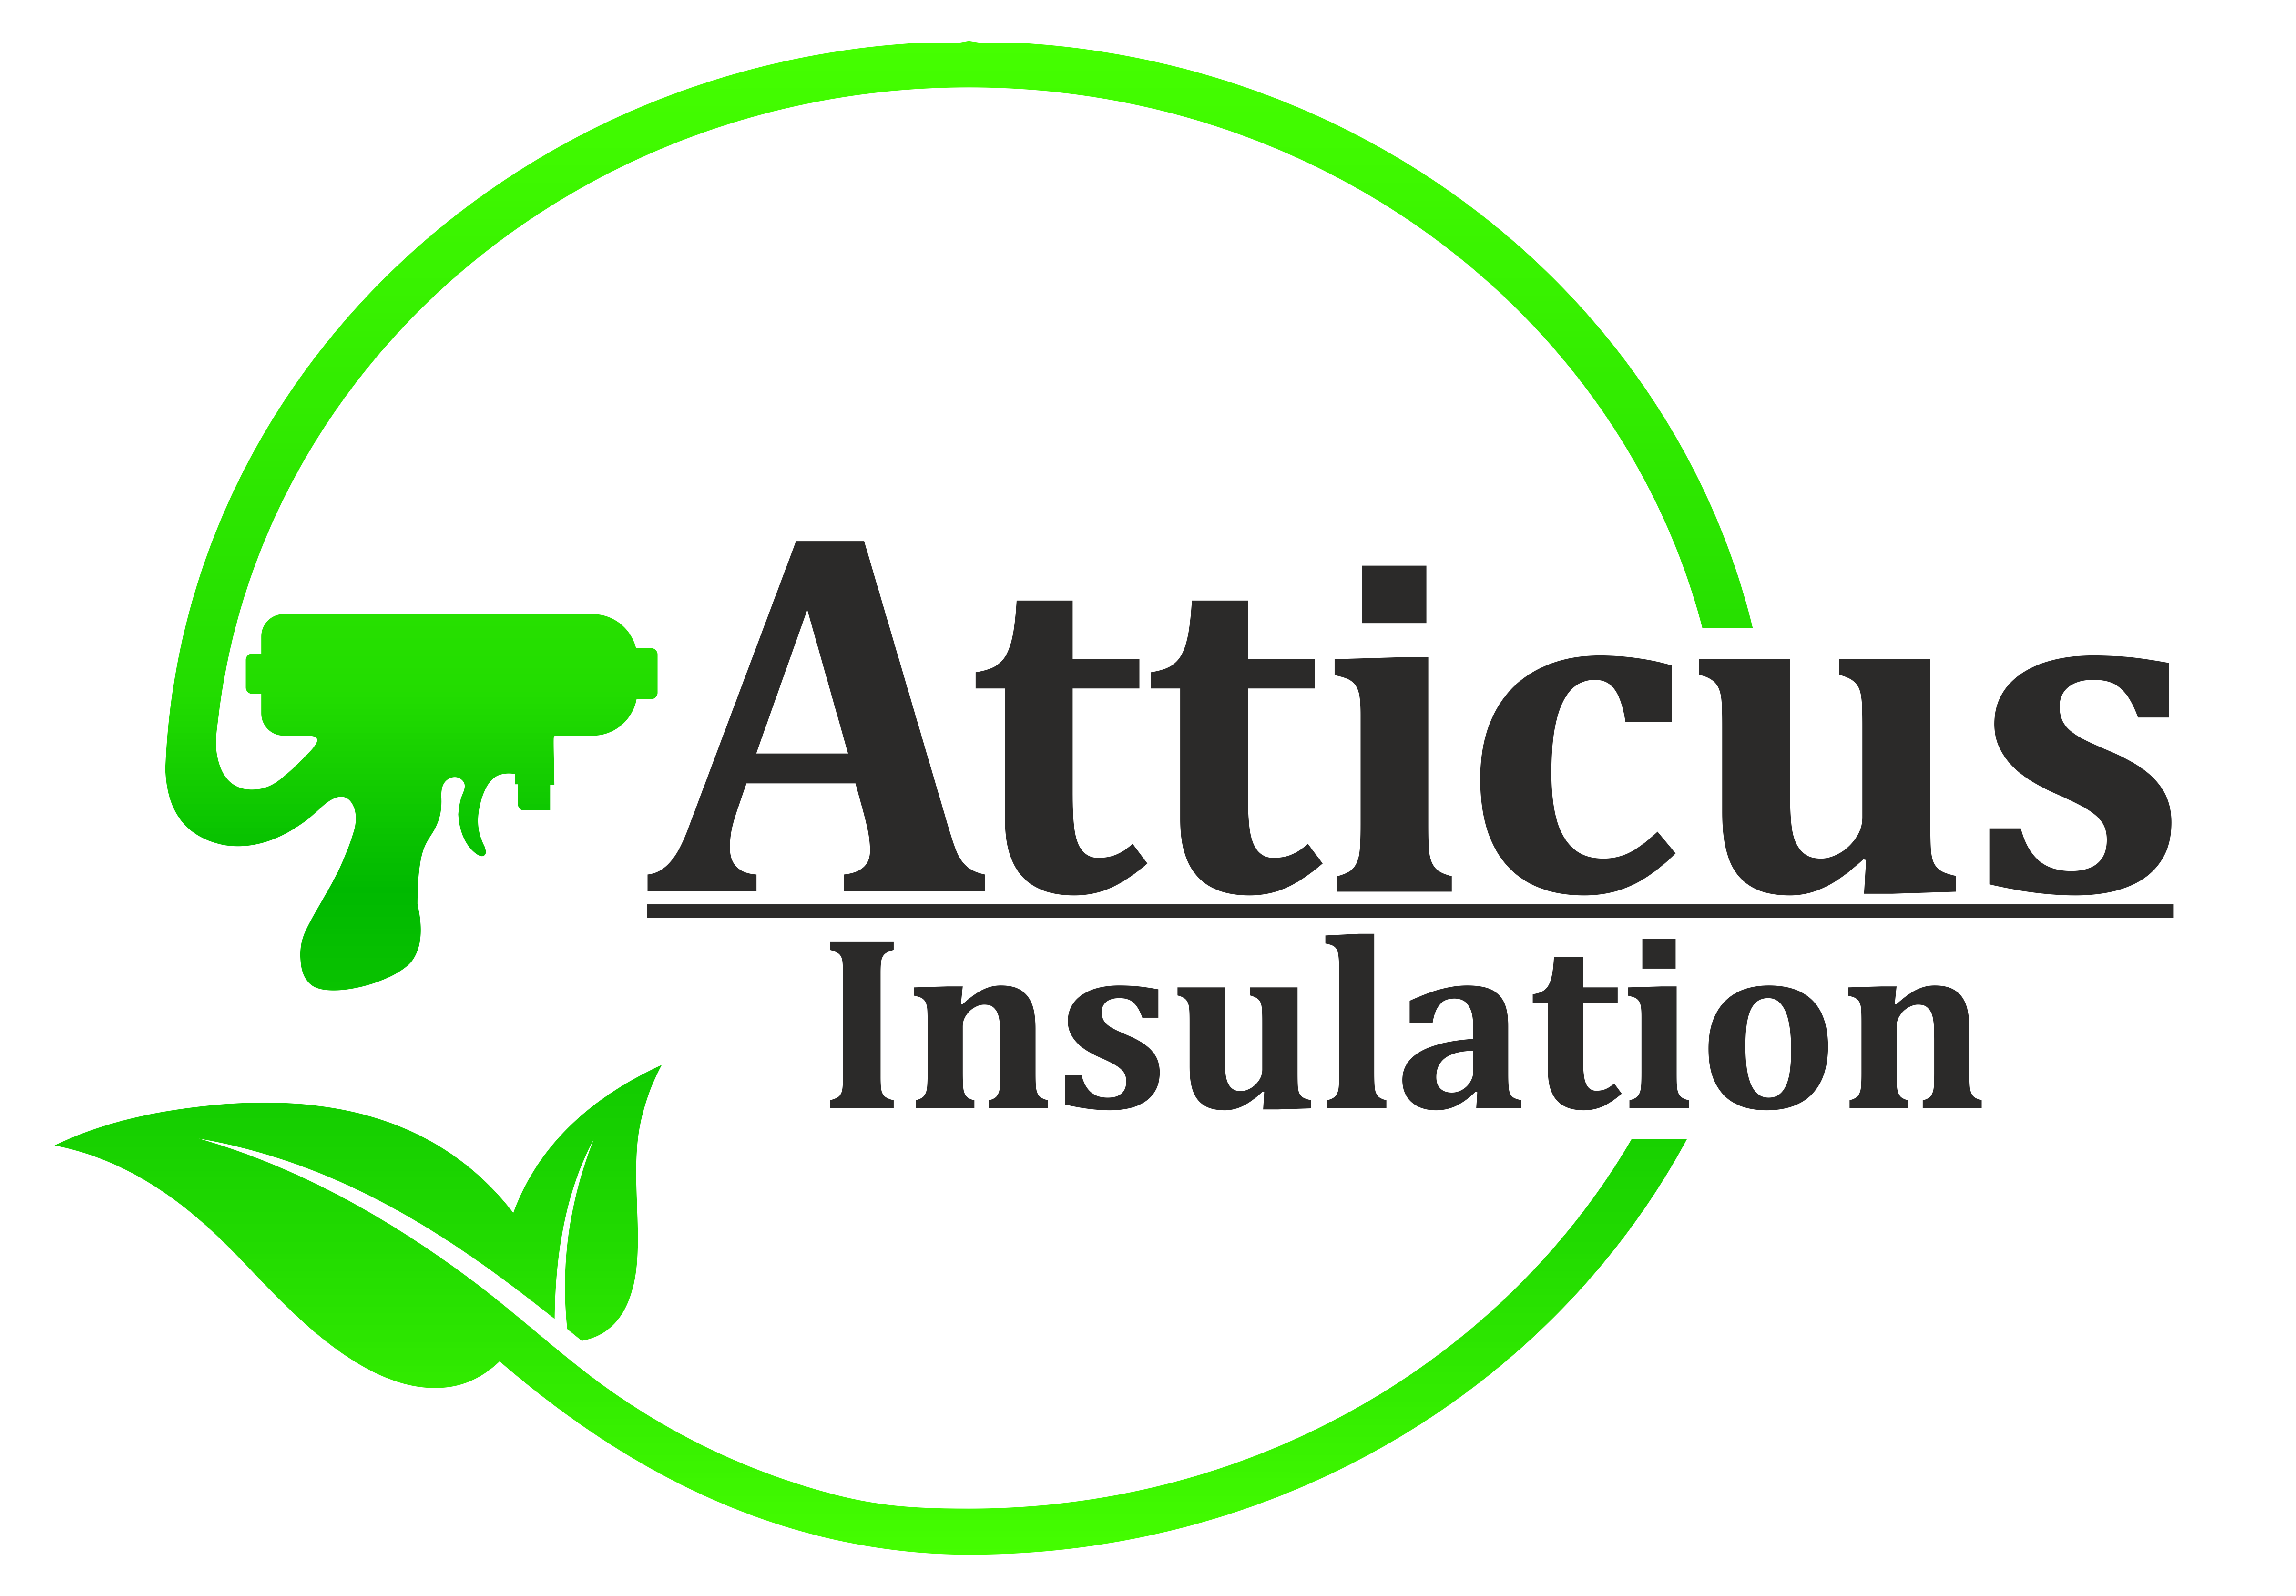 Atticus Insulation